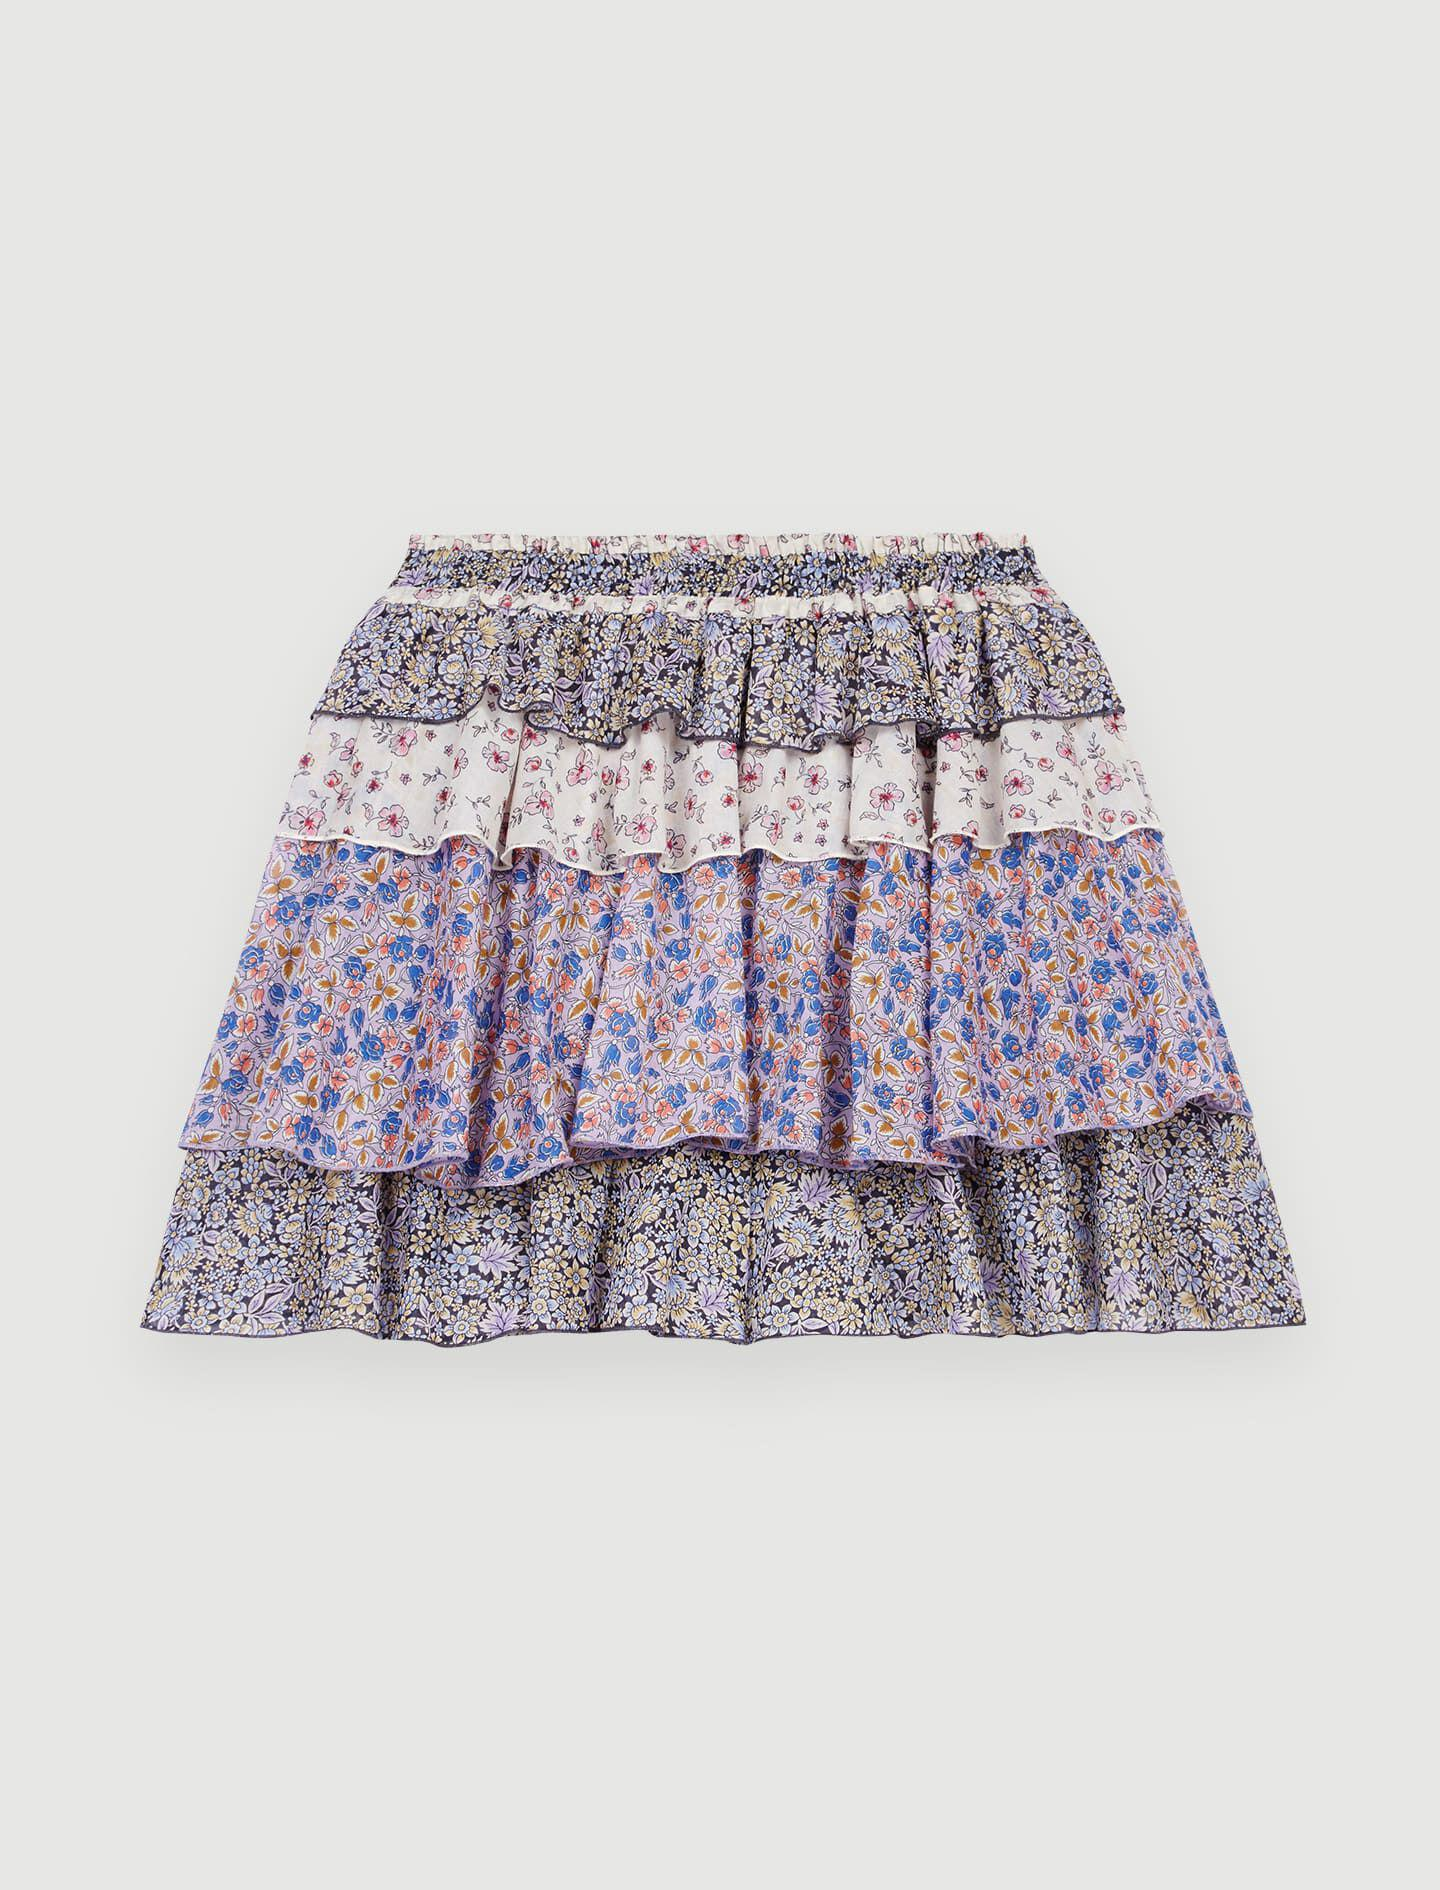 PRINTED COTTON VOILE SKIRT WITH RUFFLES 4